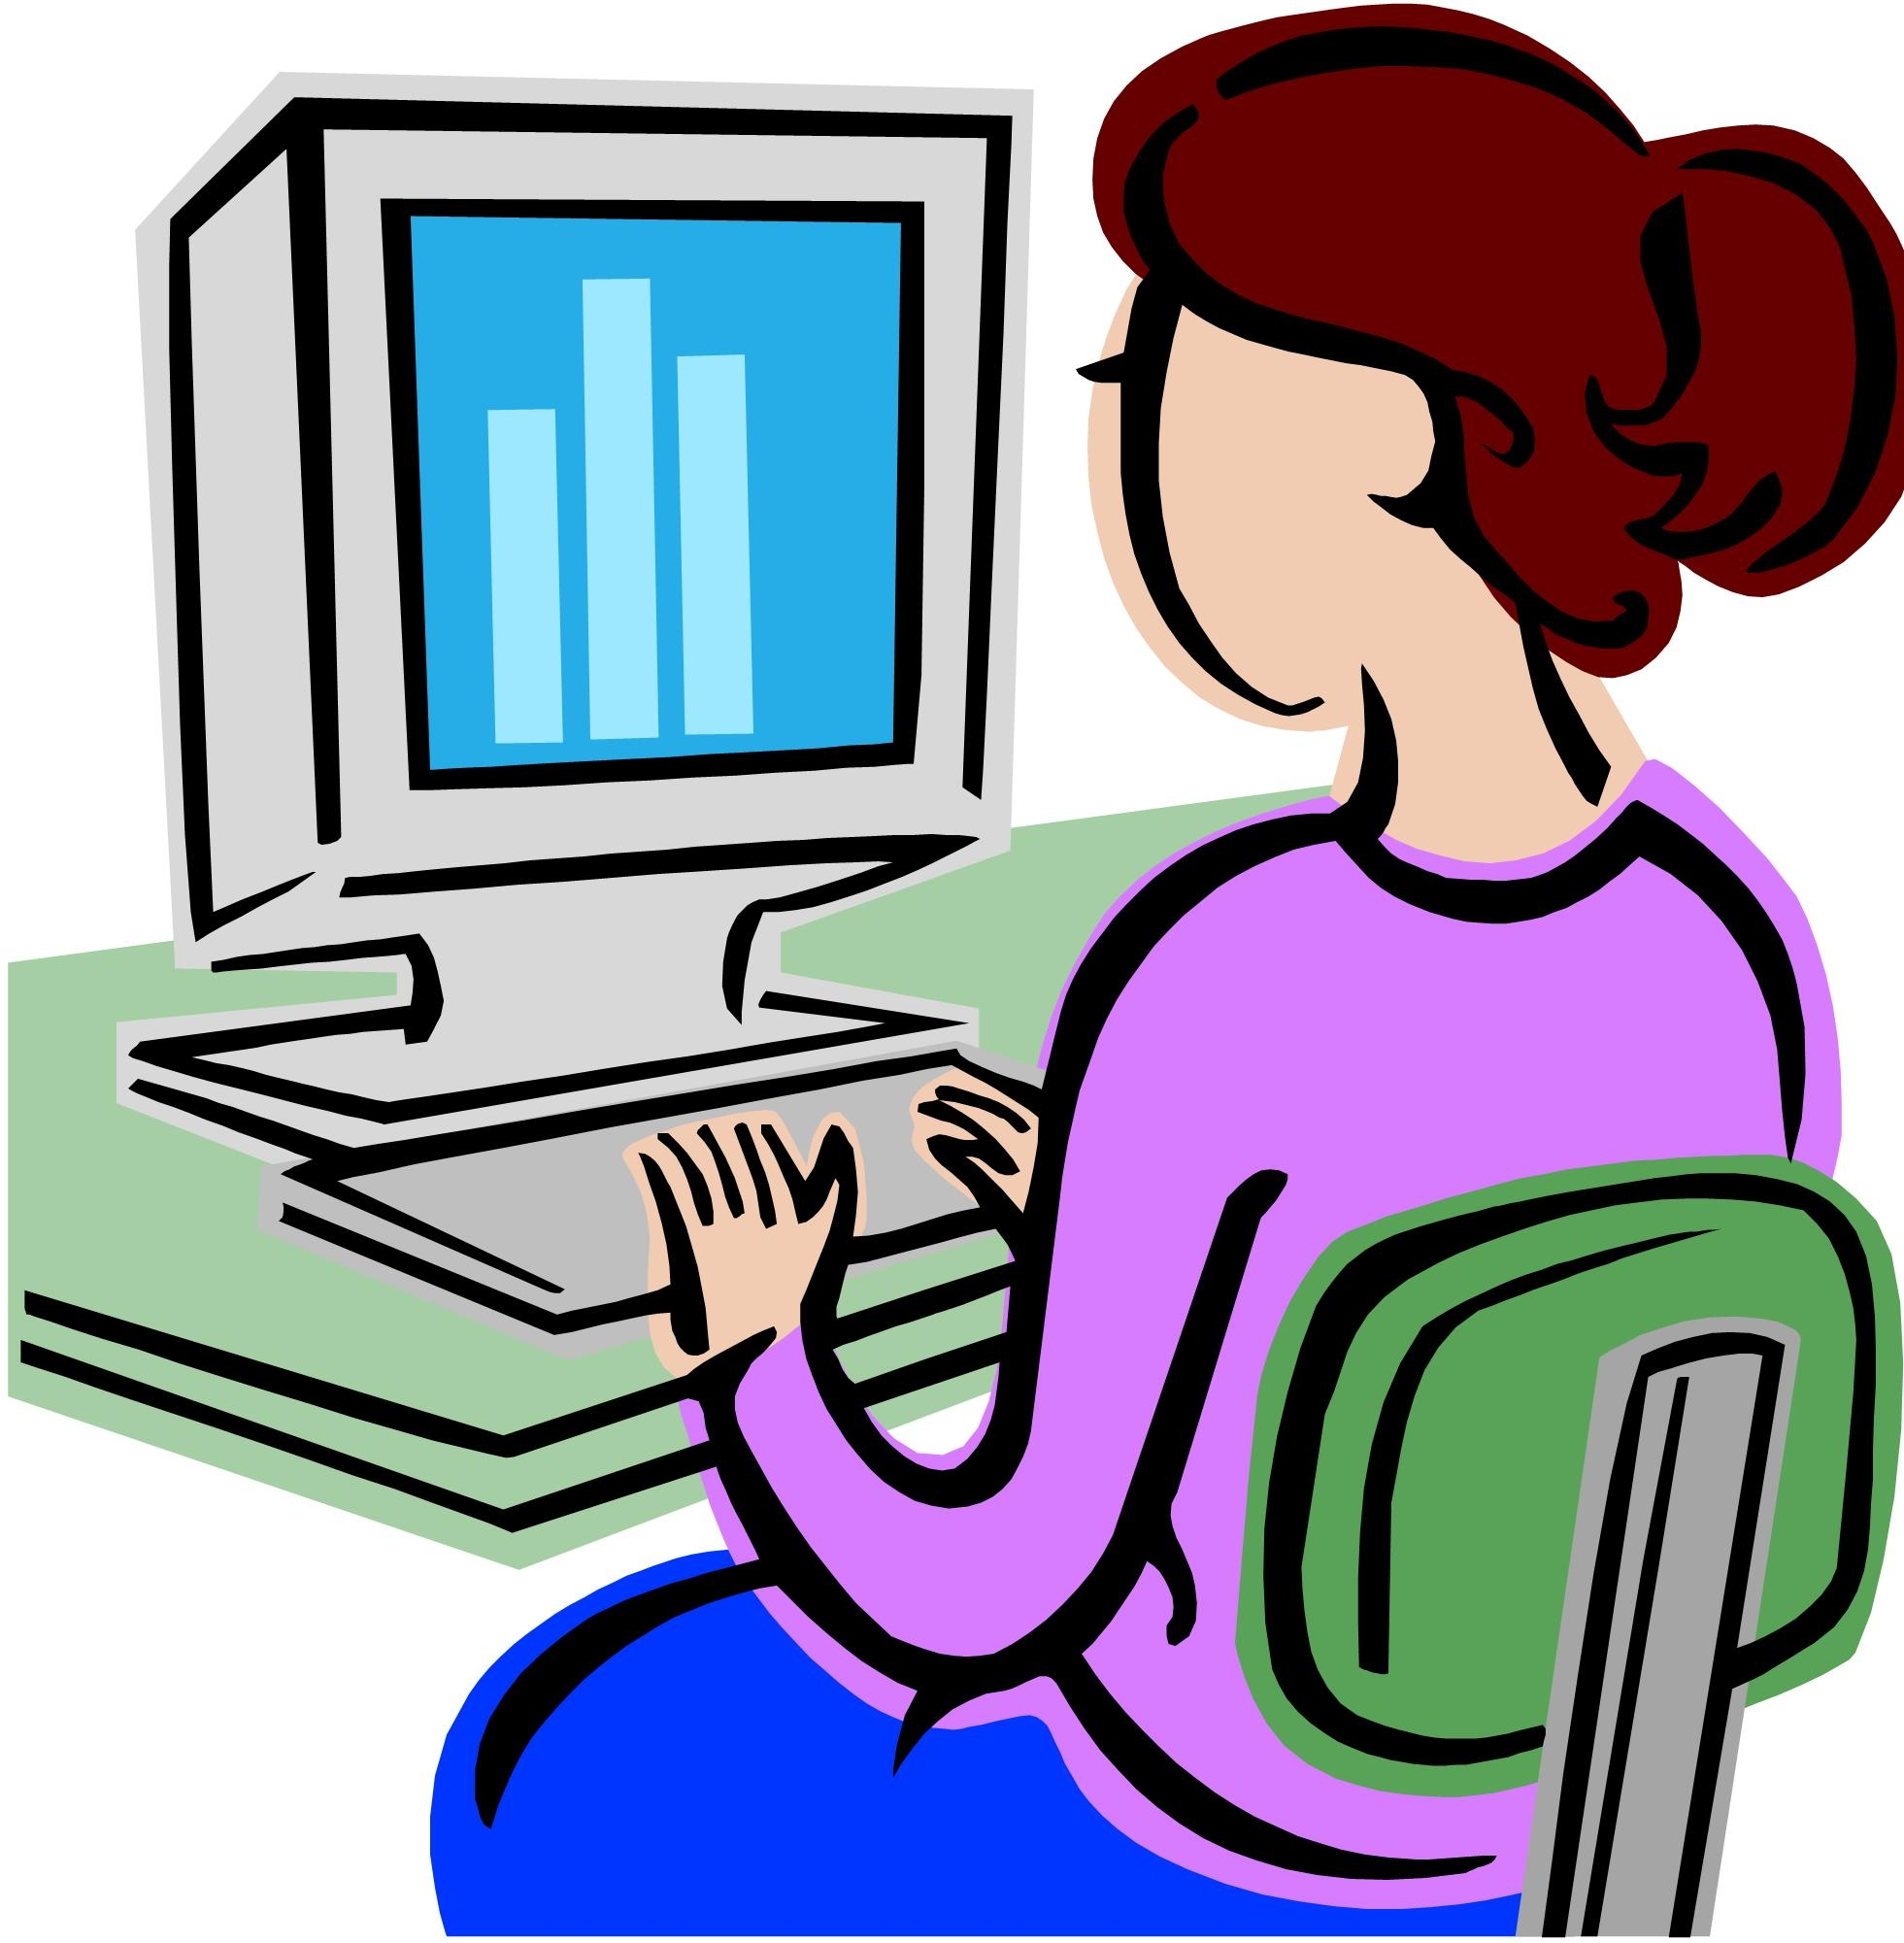 Typing in computer clipart clip art library library Person typing on computer clipart - ClipartFest clip art library library